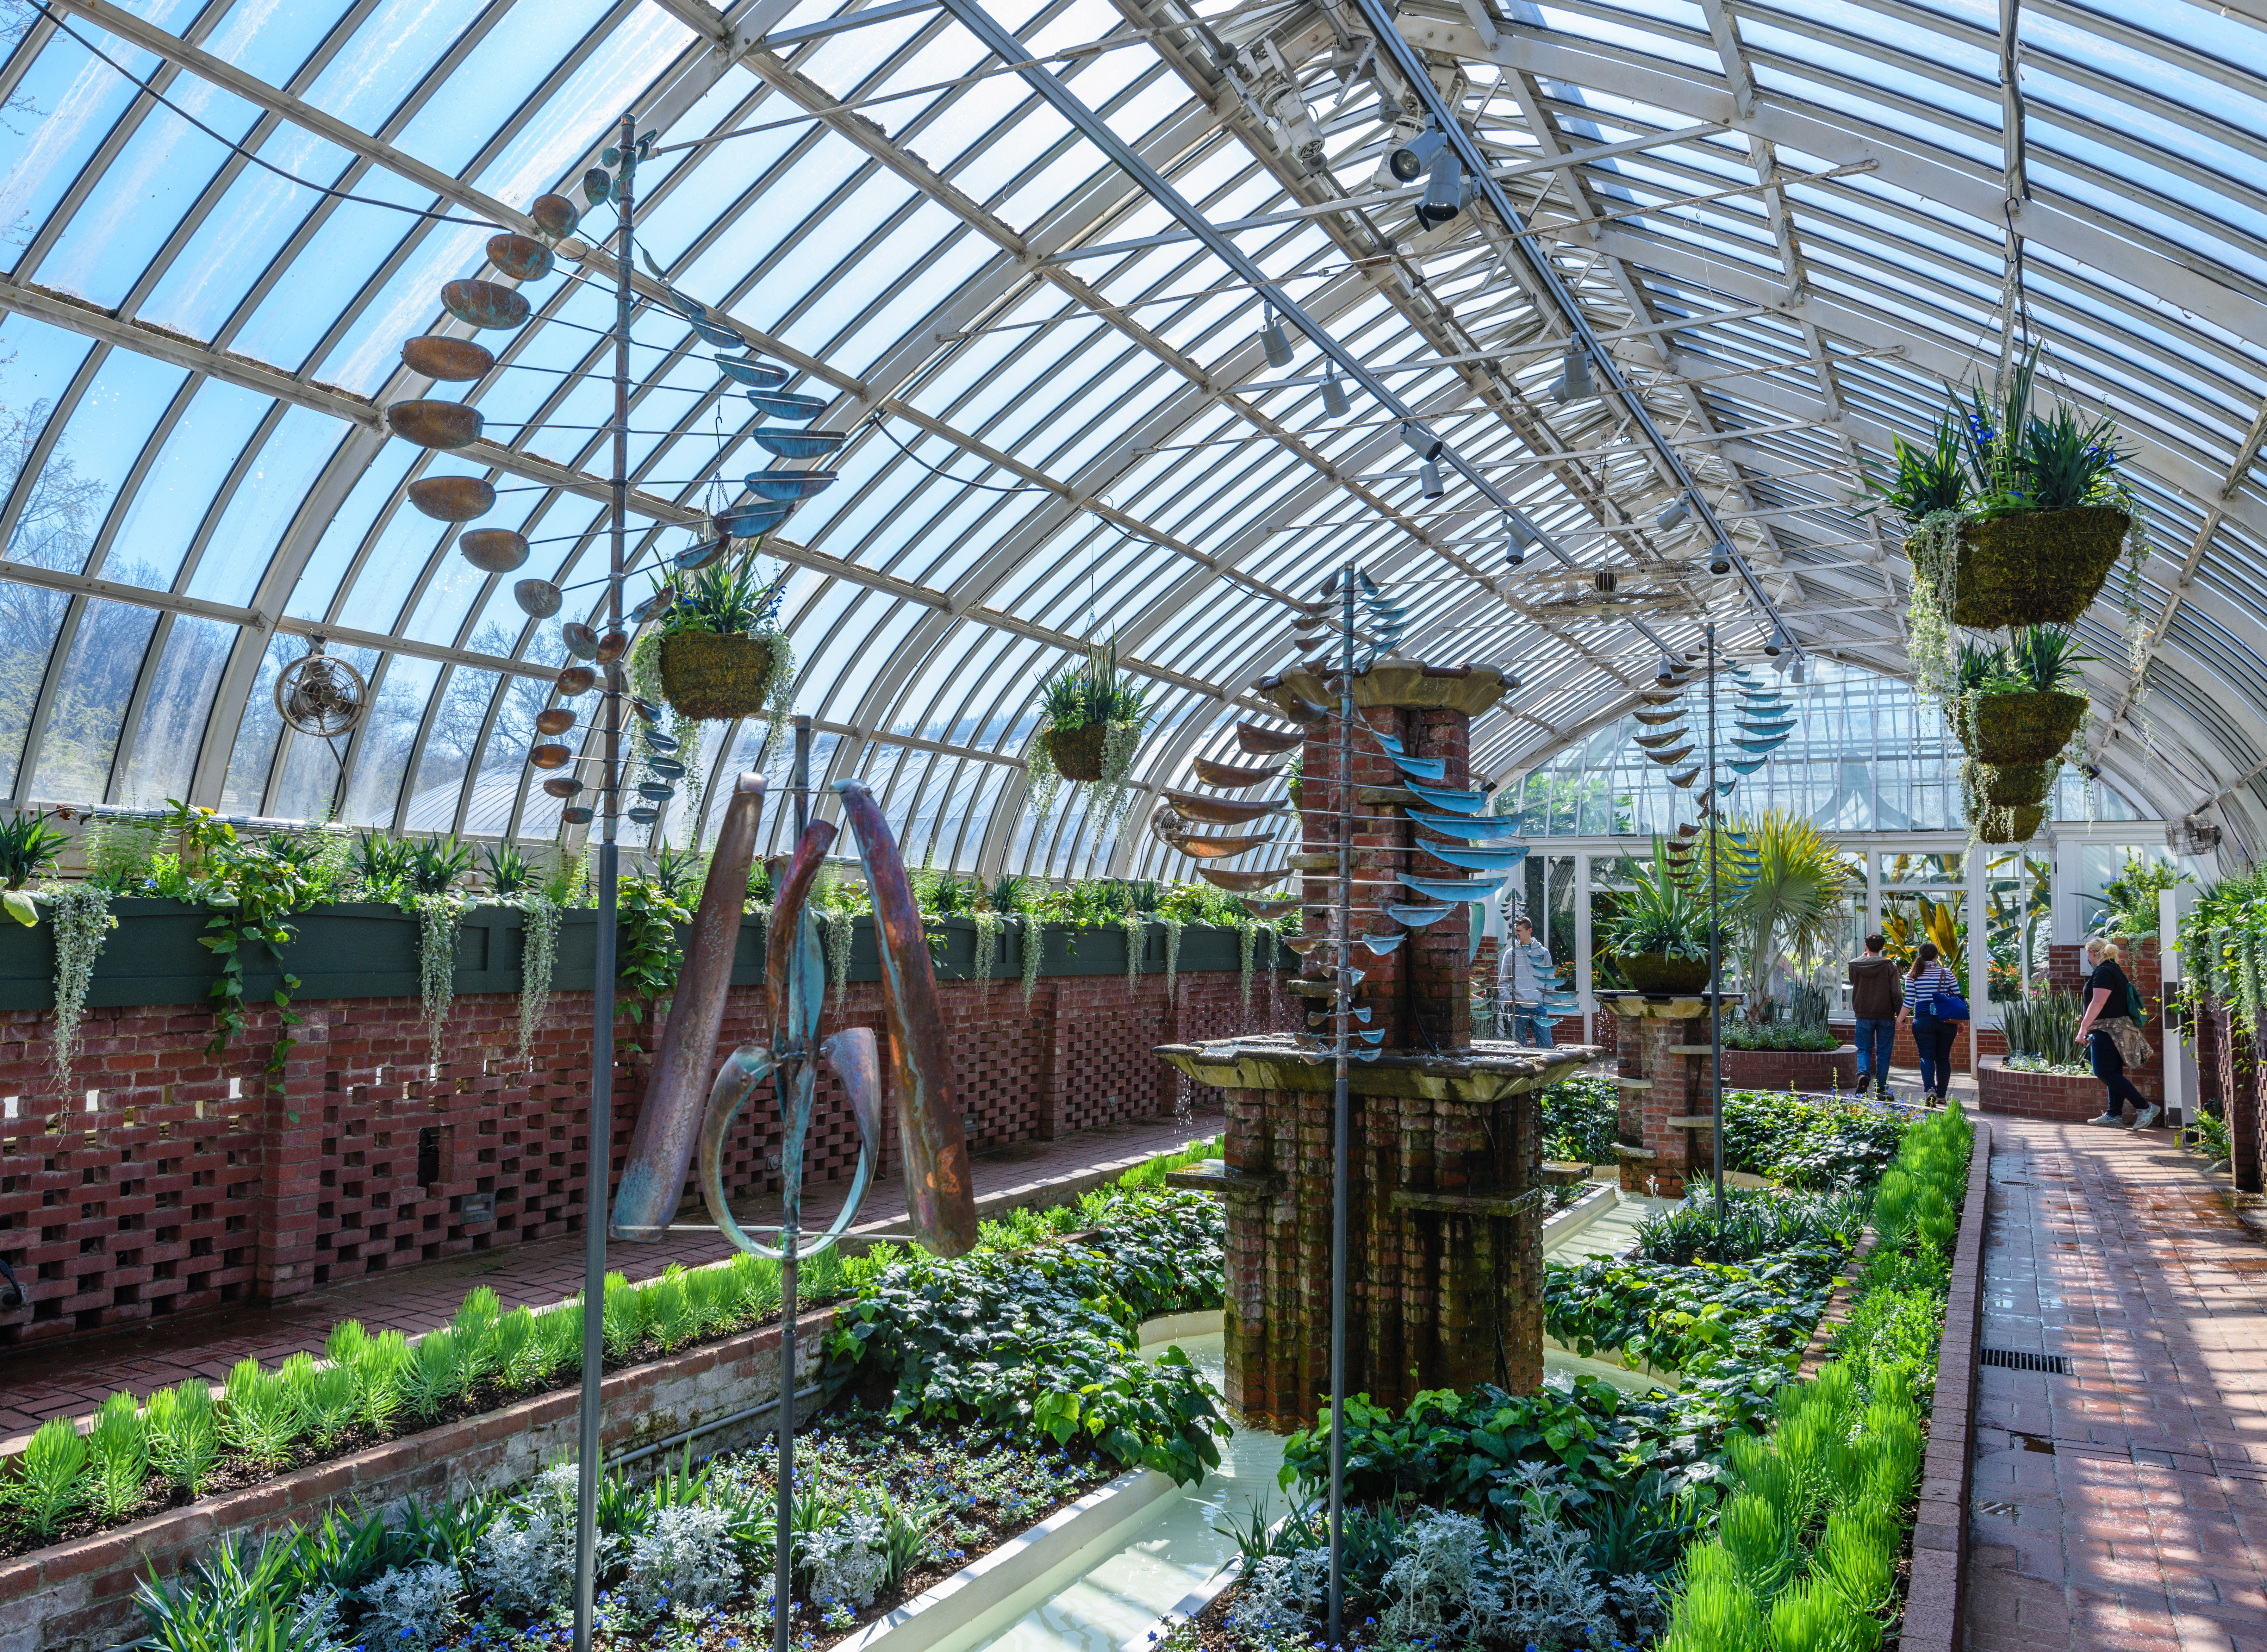 Lyman Whitaker Wind Sculptures at Phipps Conservatory and Botanical Gardens